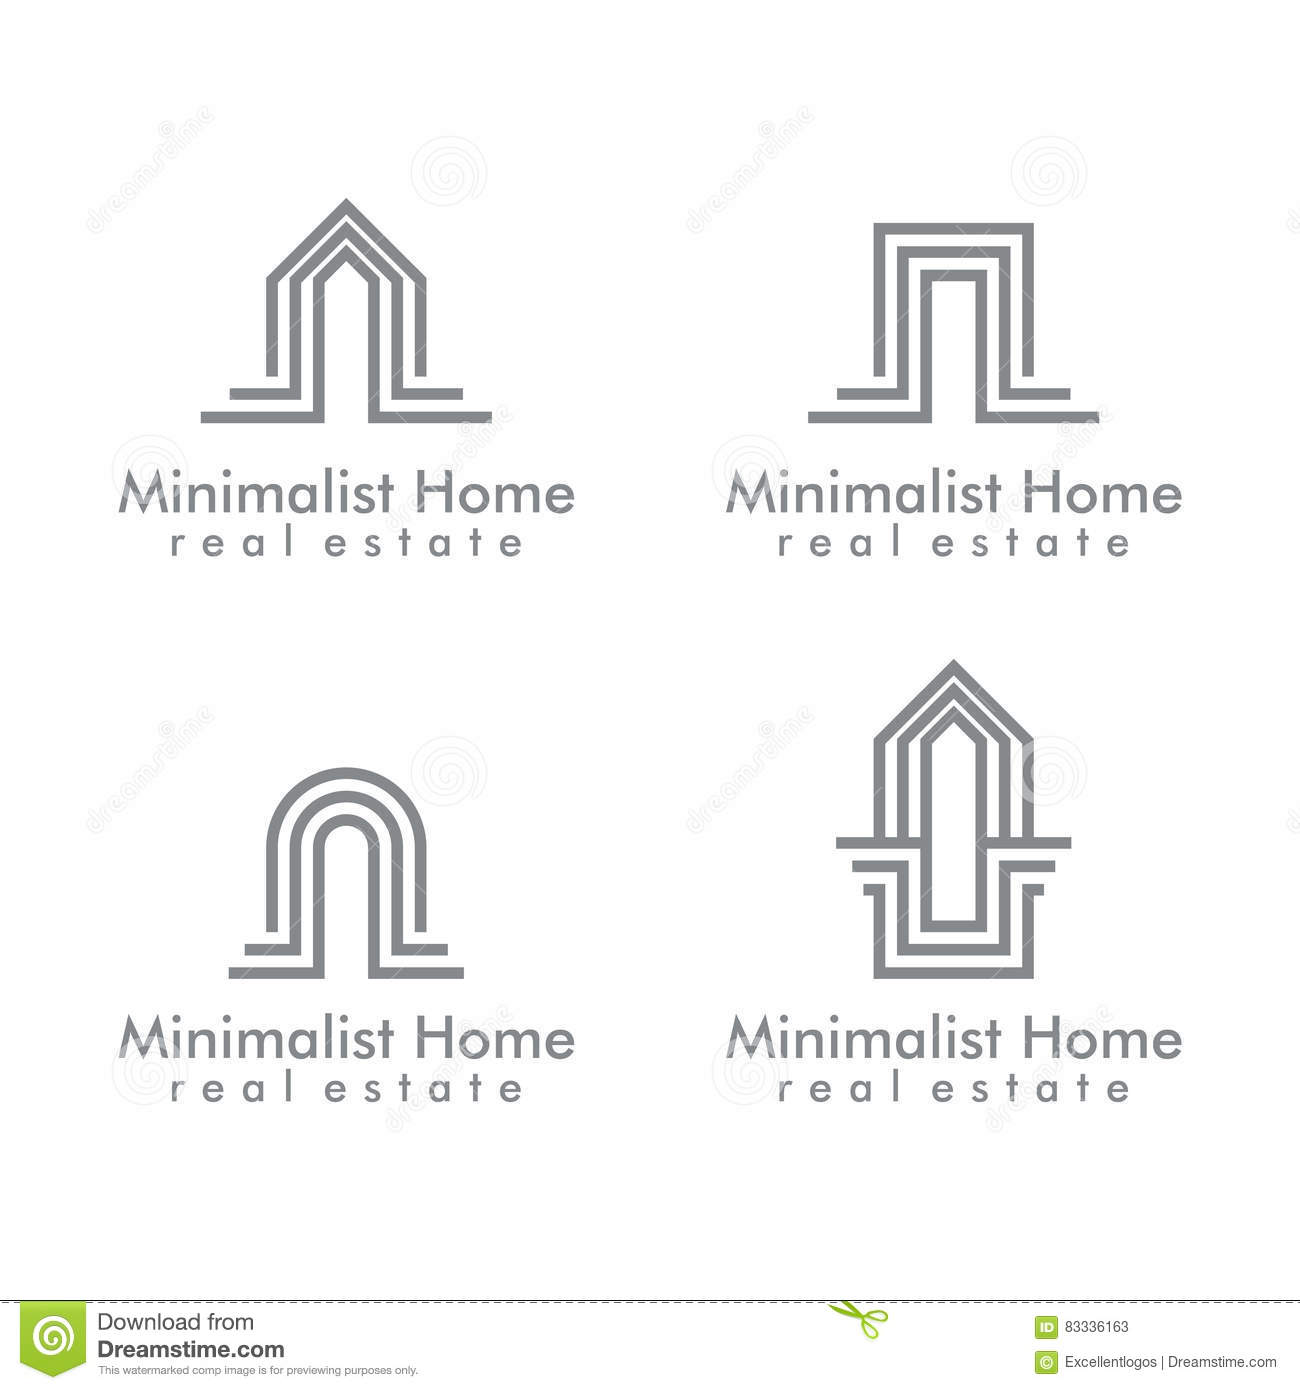 Real estate vector logo design minimalist home logo stock for Minimalist house logo